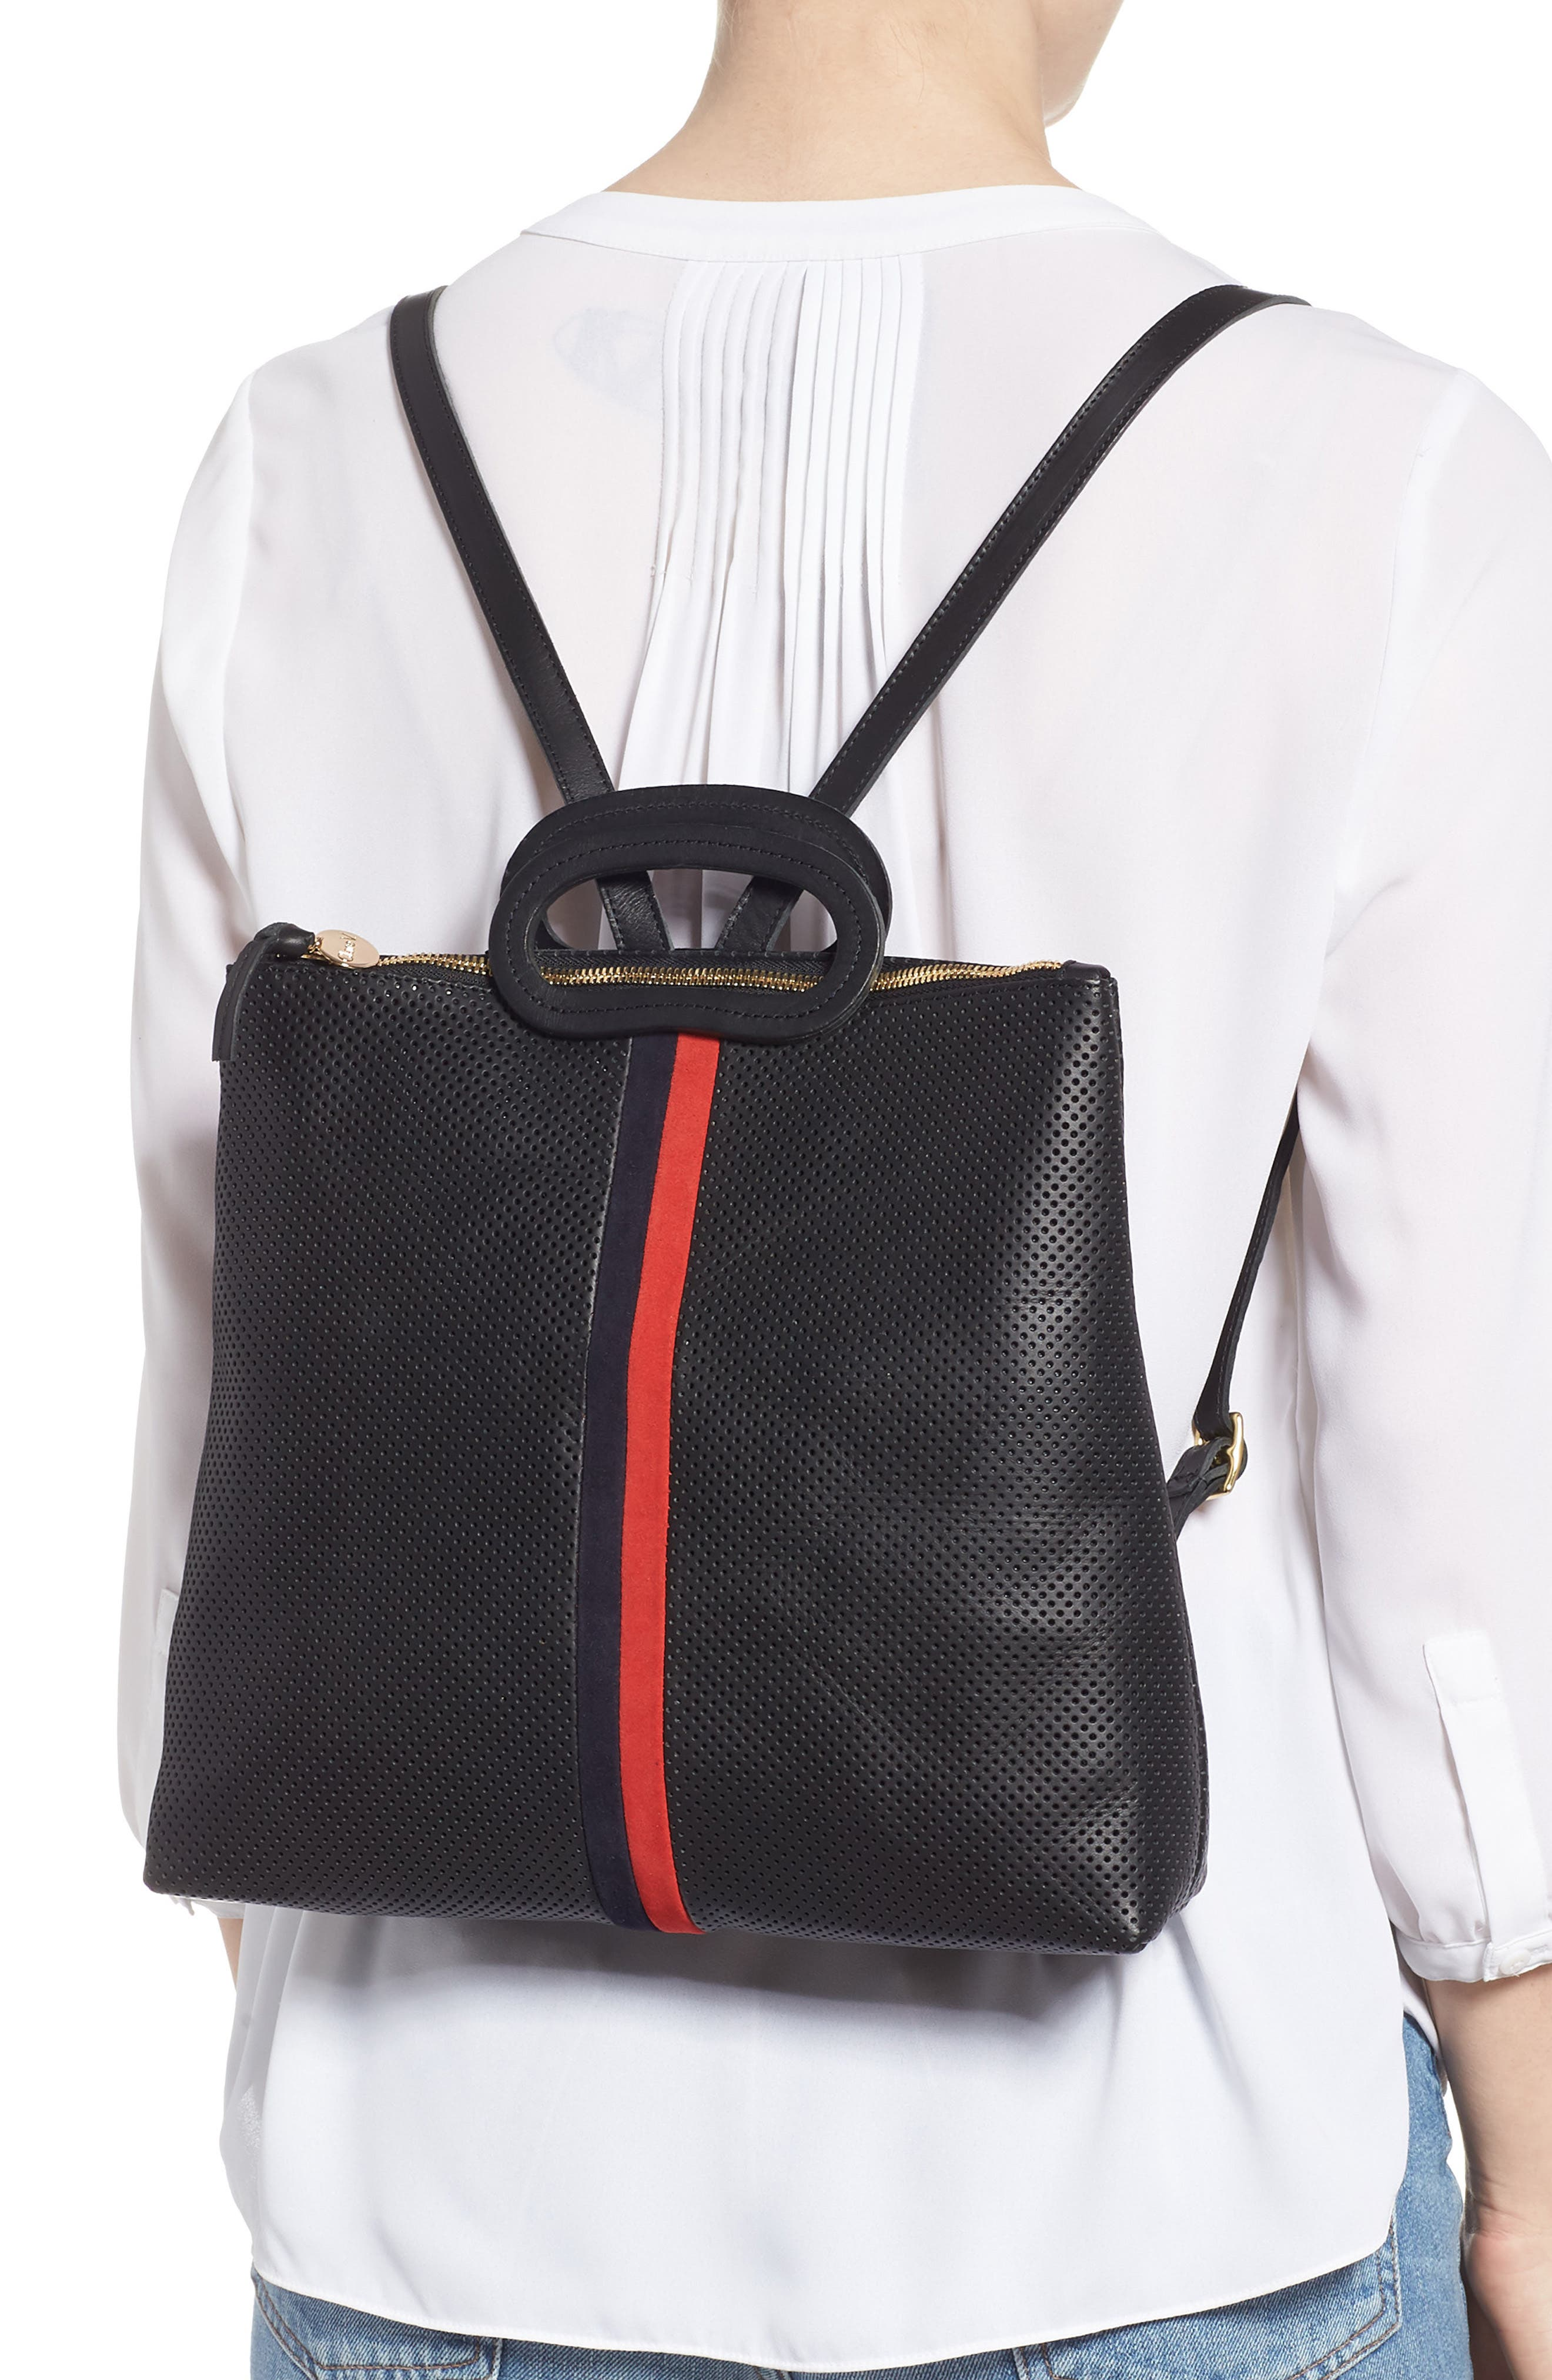 Marcelle Perforated Leather Backpack,                             Alternate thumbnail 2, color,                             BLACK PERF WITH NAVY/ RED